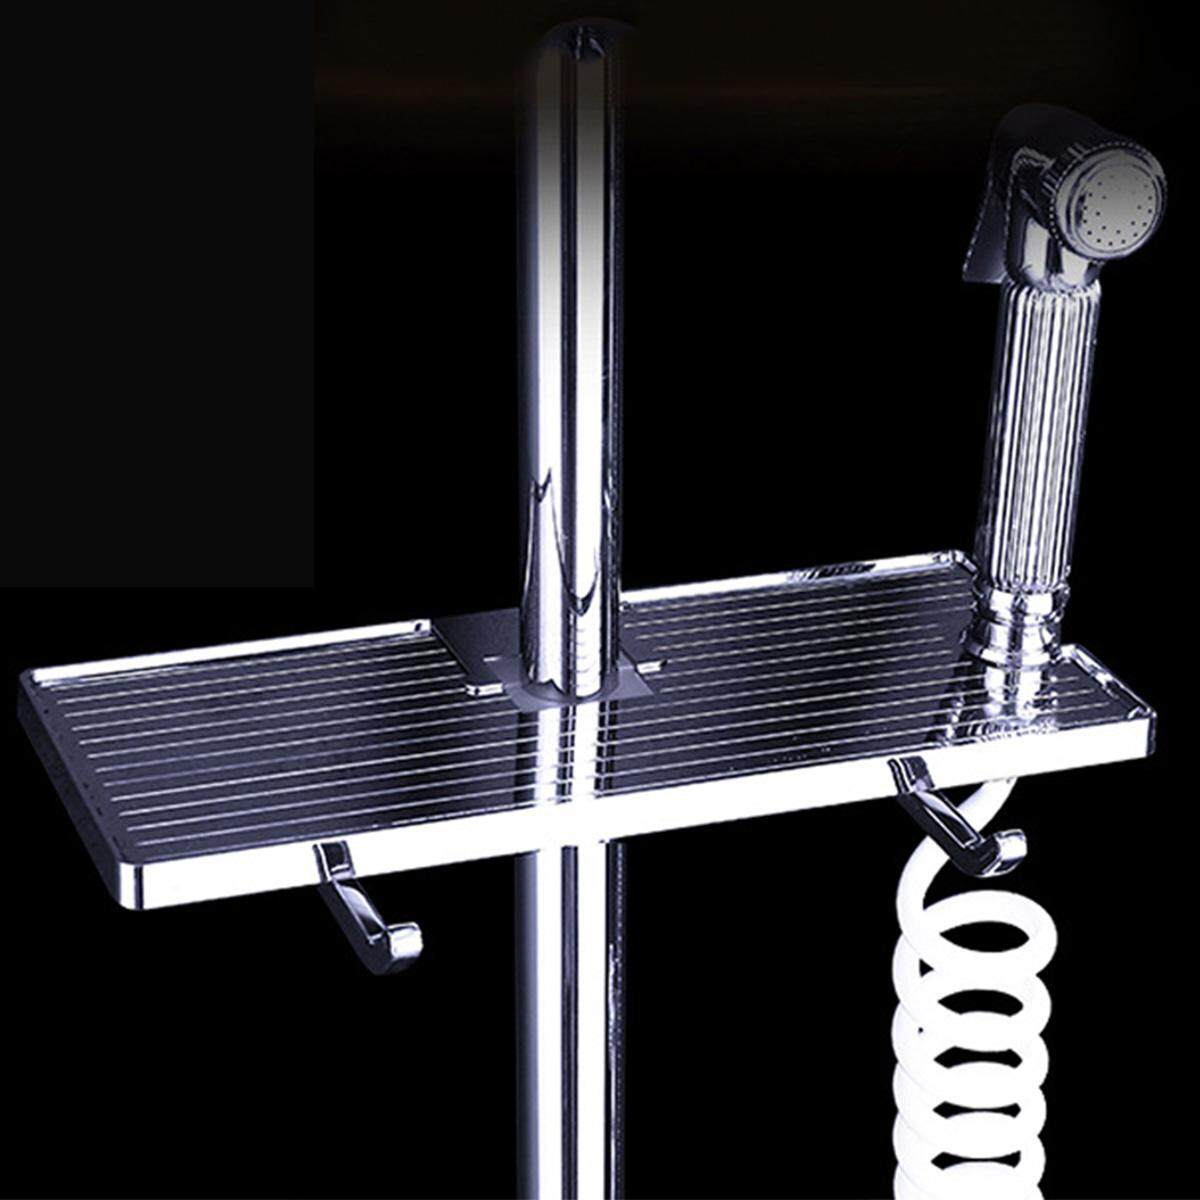 Bathroom Adjustable Bath Pole Rack Shower Caddy Shelf Storage Holder Organizer By Glimmer